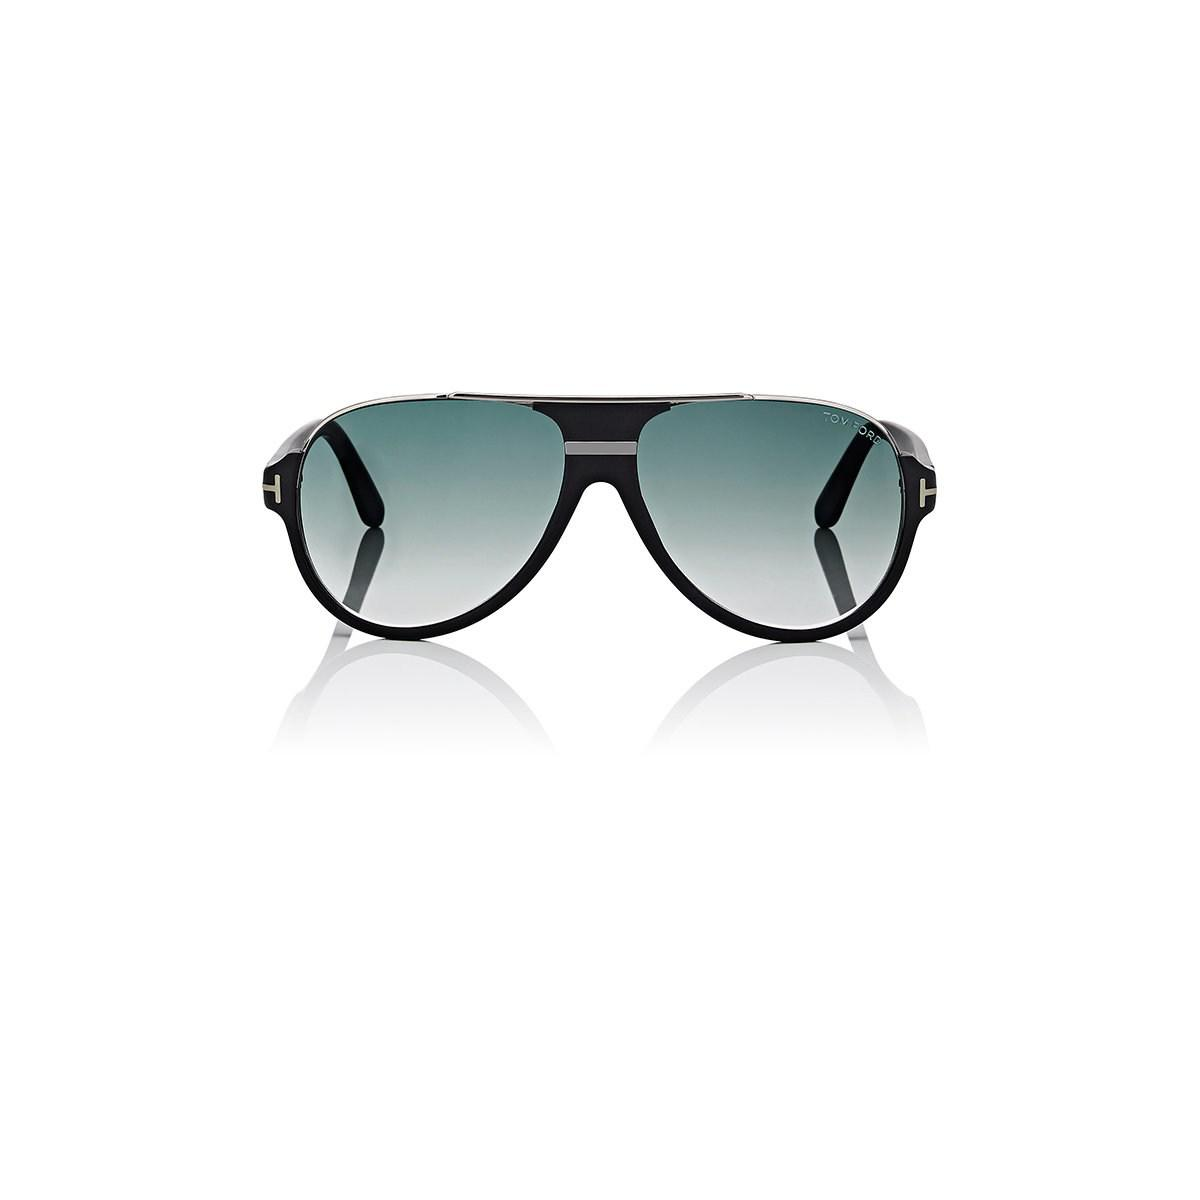 4a78cf8e4d6 Lyst - Tom Ford Dimitry Sunglasses in Blue for Men